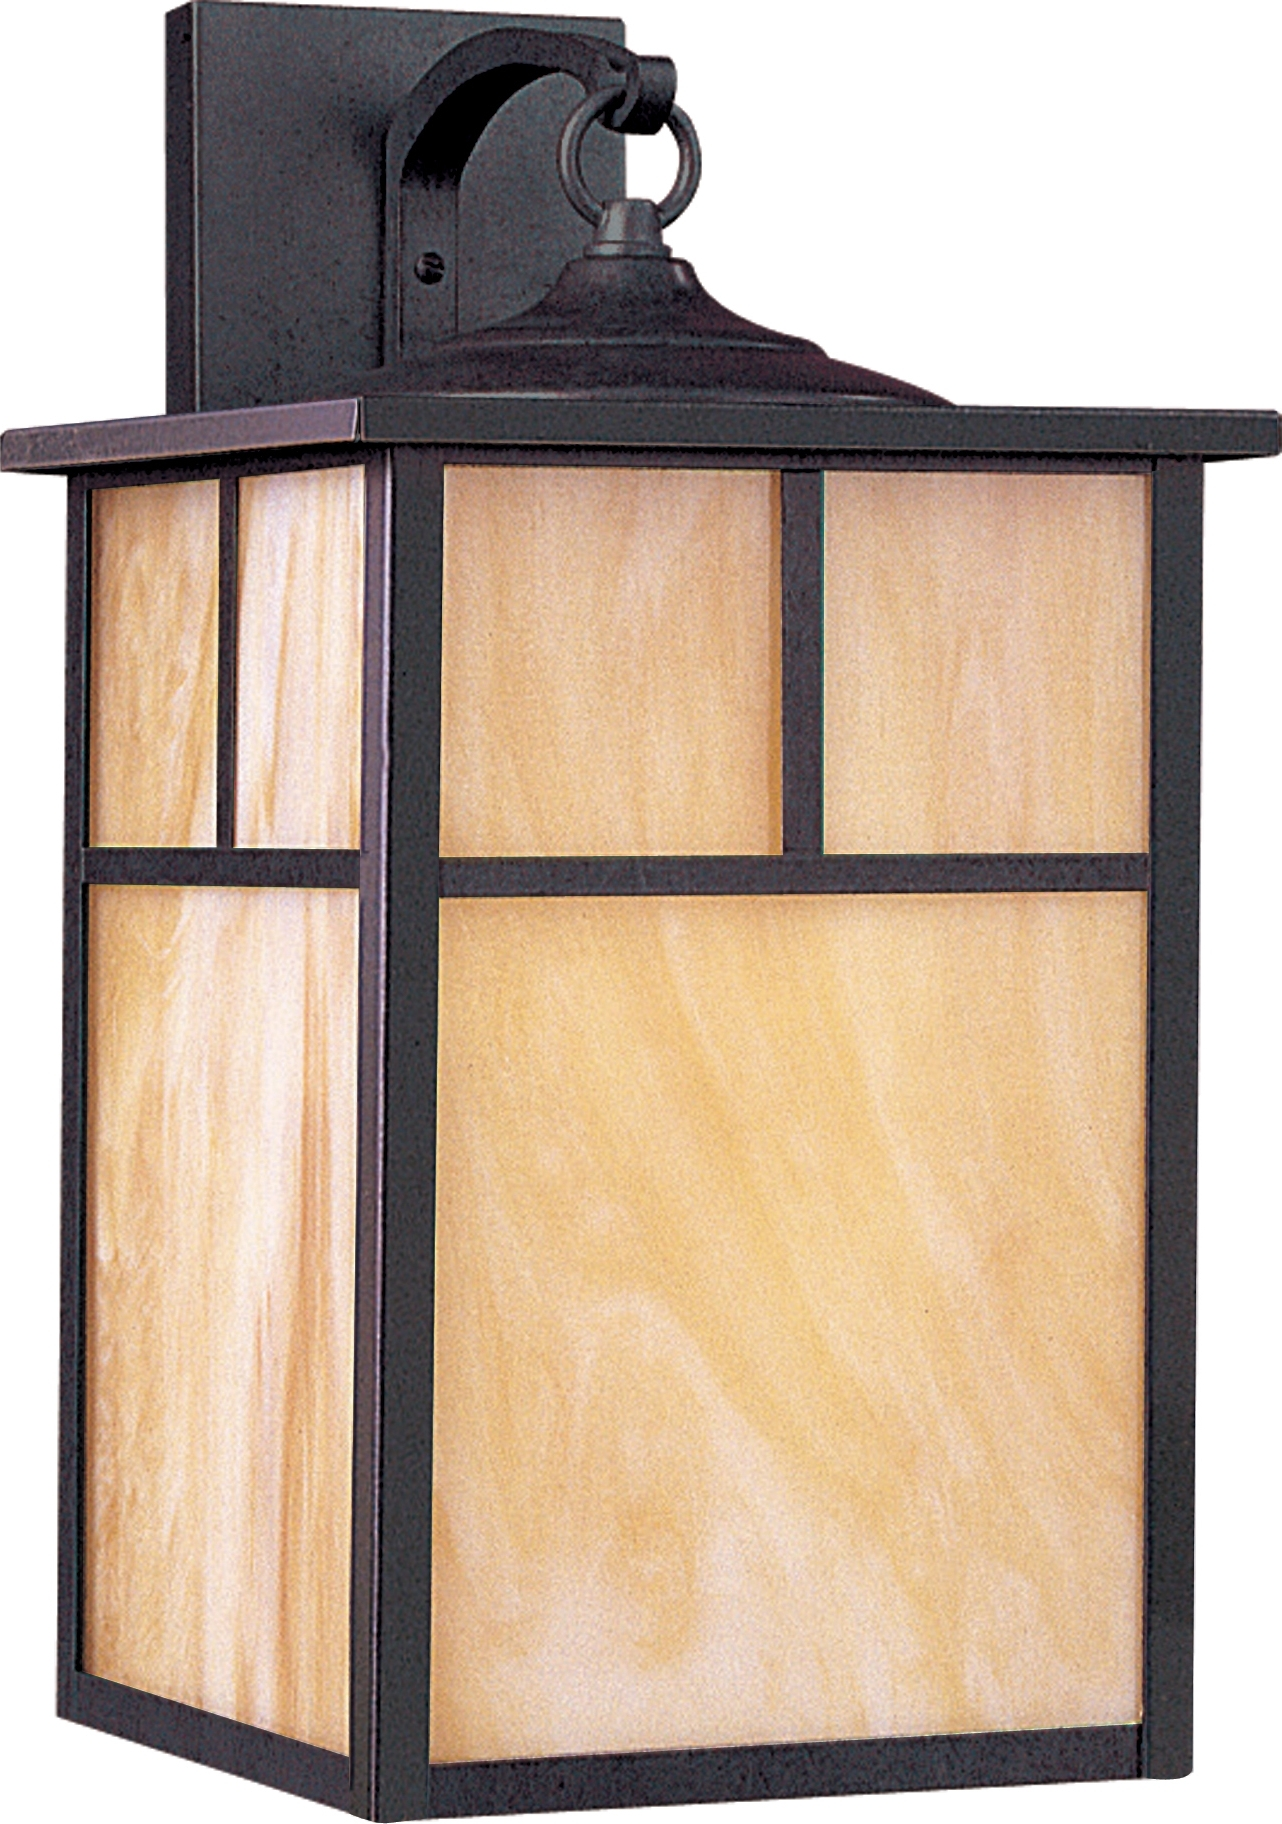 Fashionable Mission Style Outdoor Wall Lighting For Coldwater Ee 1 Light Outdoor Wall Lantern – Outdoor Wall Mount (View 4 of 20)